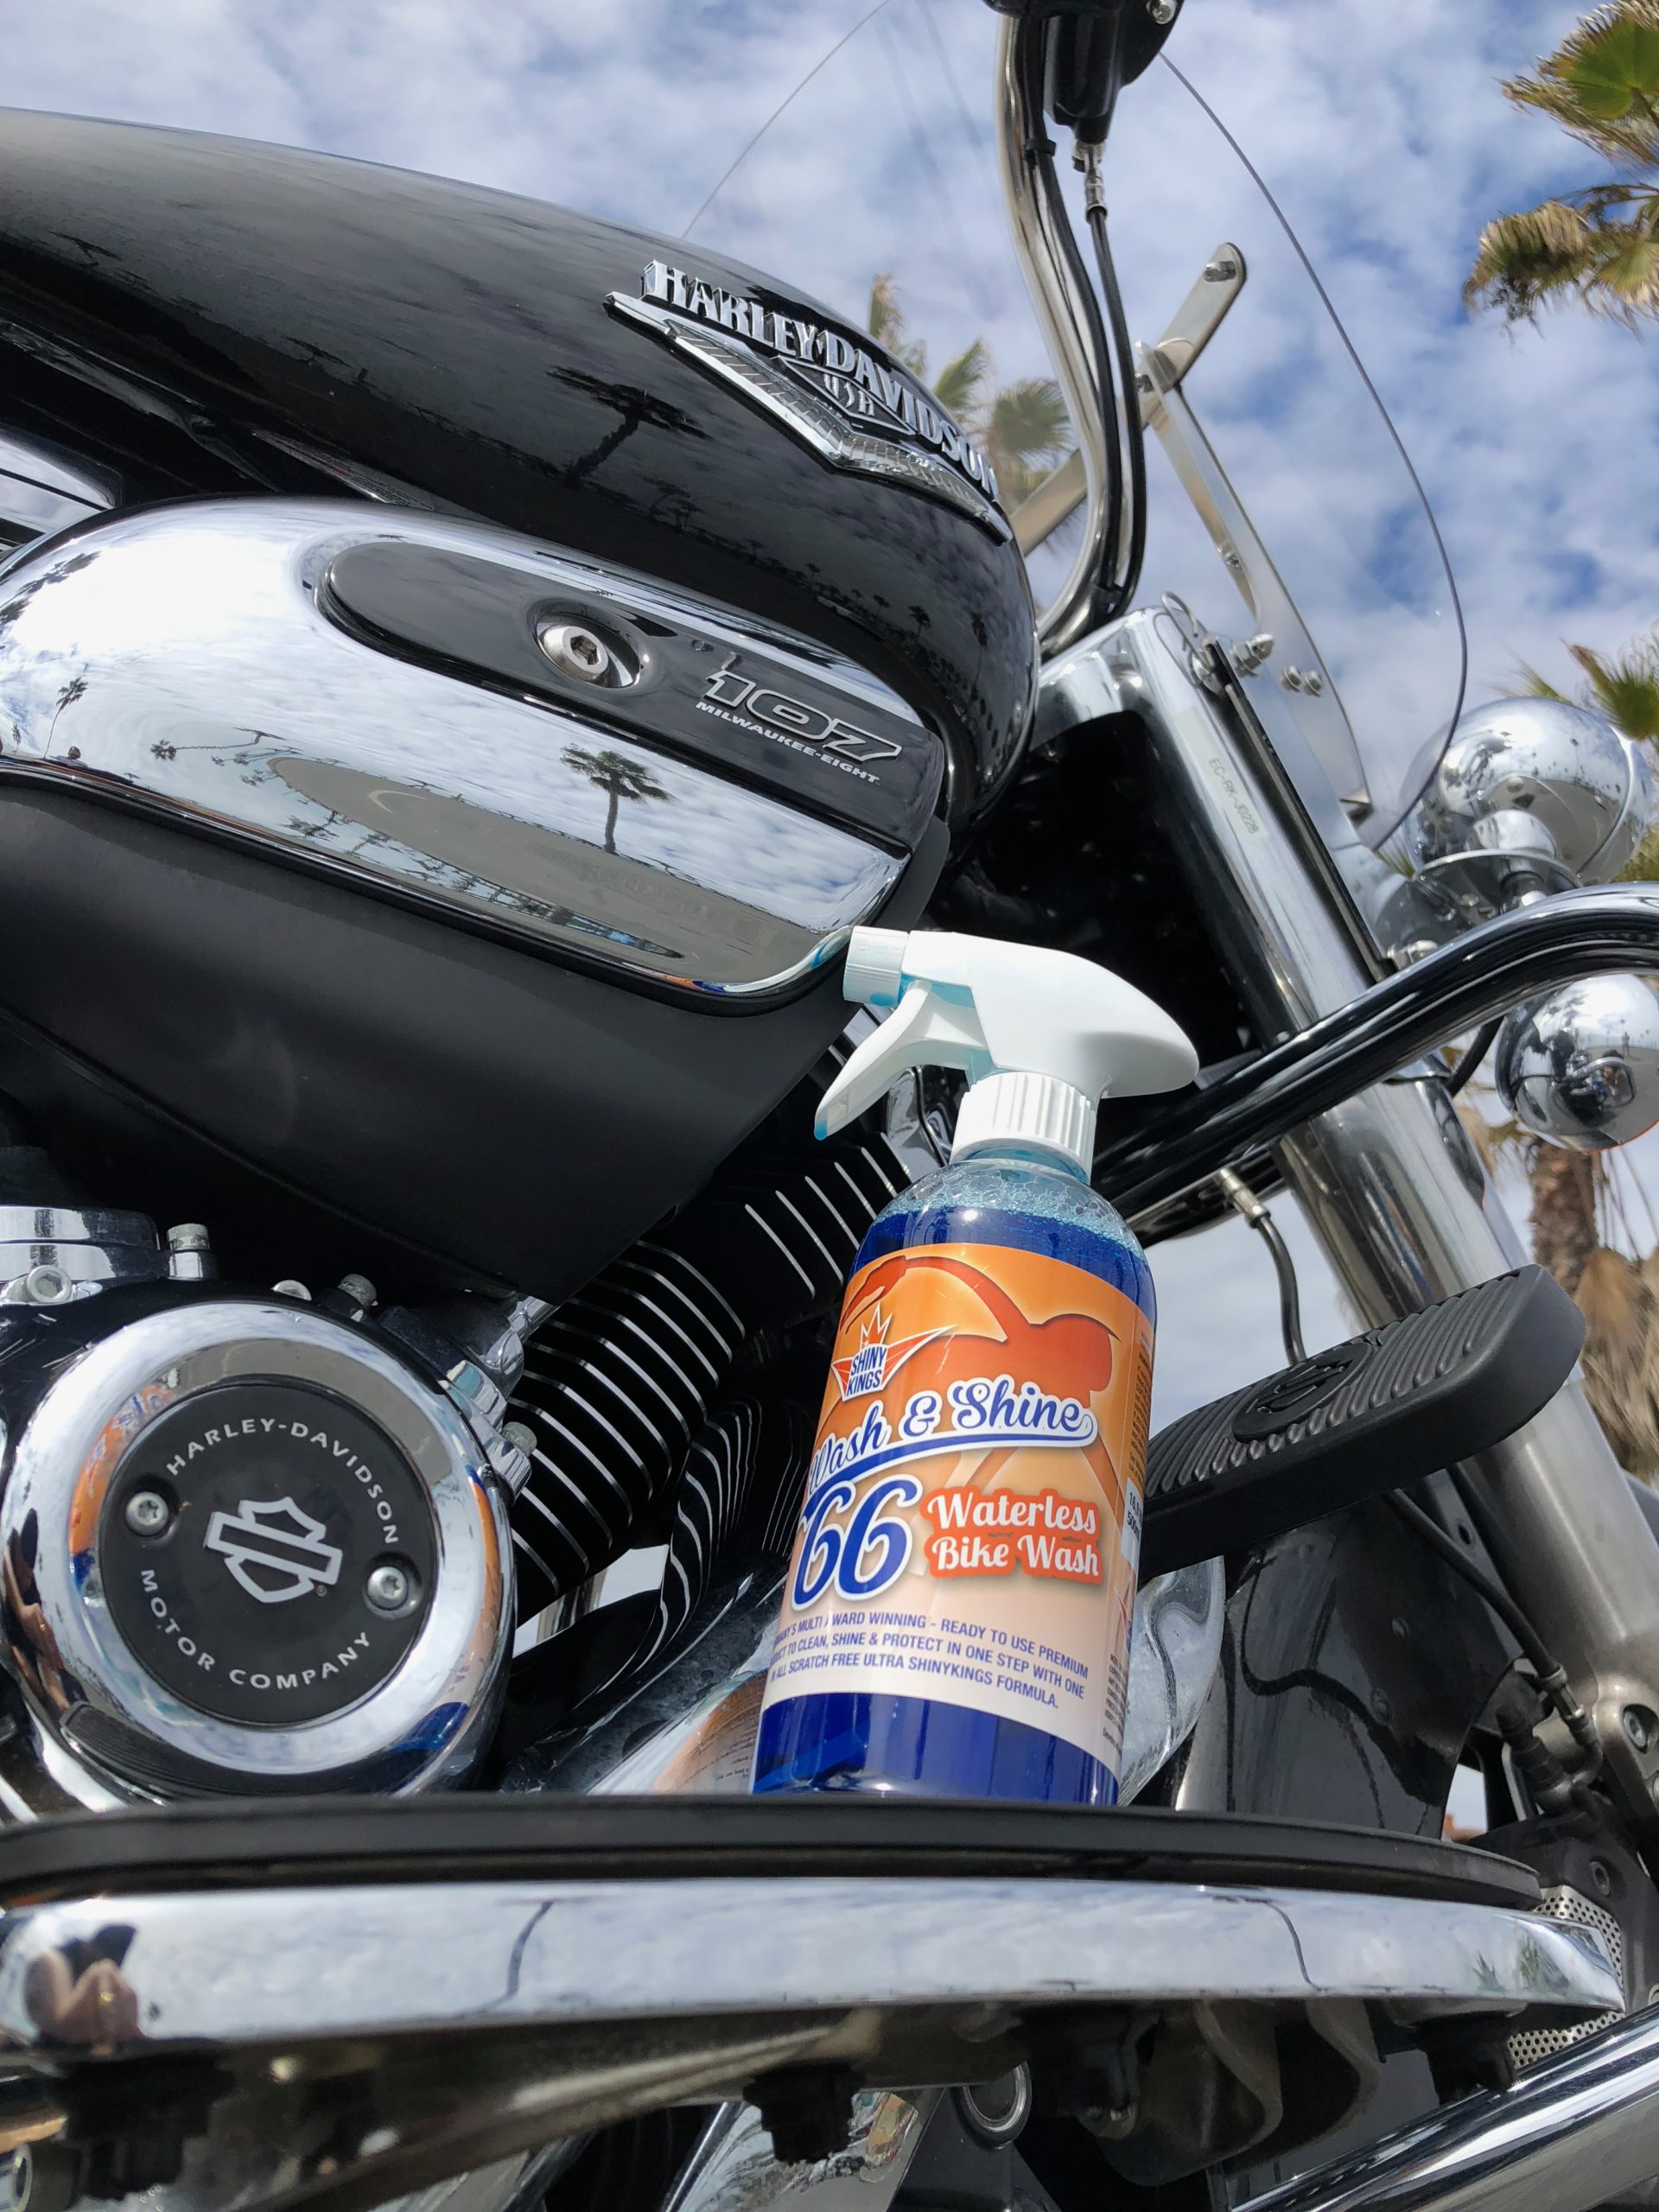 best motorcycle cleaner, best quick detailer fpr motorcycle, waterless motorcycle cleaner, waterless motorcycle wash, waterless bike wash, Wash&Shine 66 bike wash, Shinykings